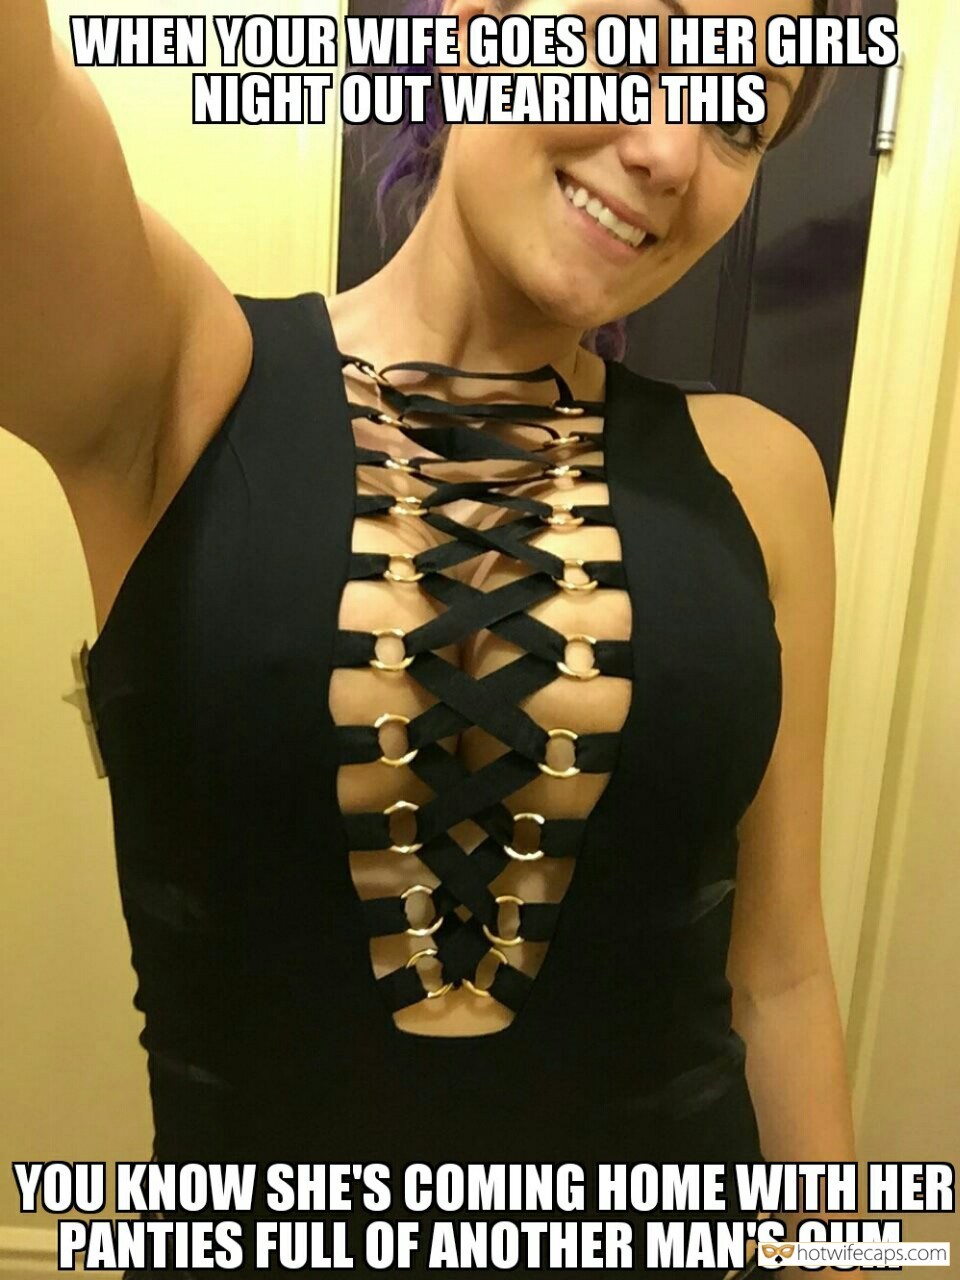 Sexy Memes Cum Slut Cuckold Cleanup Creampie Cheating hotwife caption: WHEN YOUR WIFE GOES ON HER GIRLS NIGHT OUT WEARING THIS, YOU KNOW SHE'S COMING HOME WITH HER PANTIES FULL OF ANOTHER MAN'S CUM MILF With Big Boobs in Black Dress